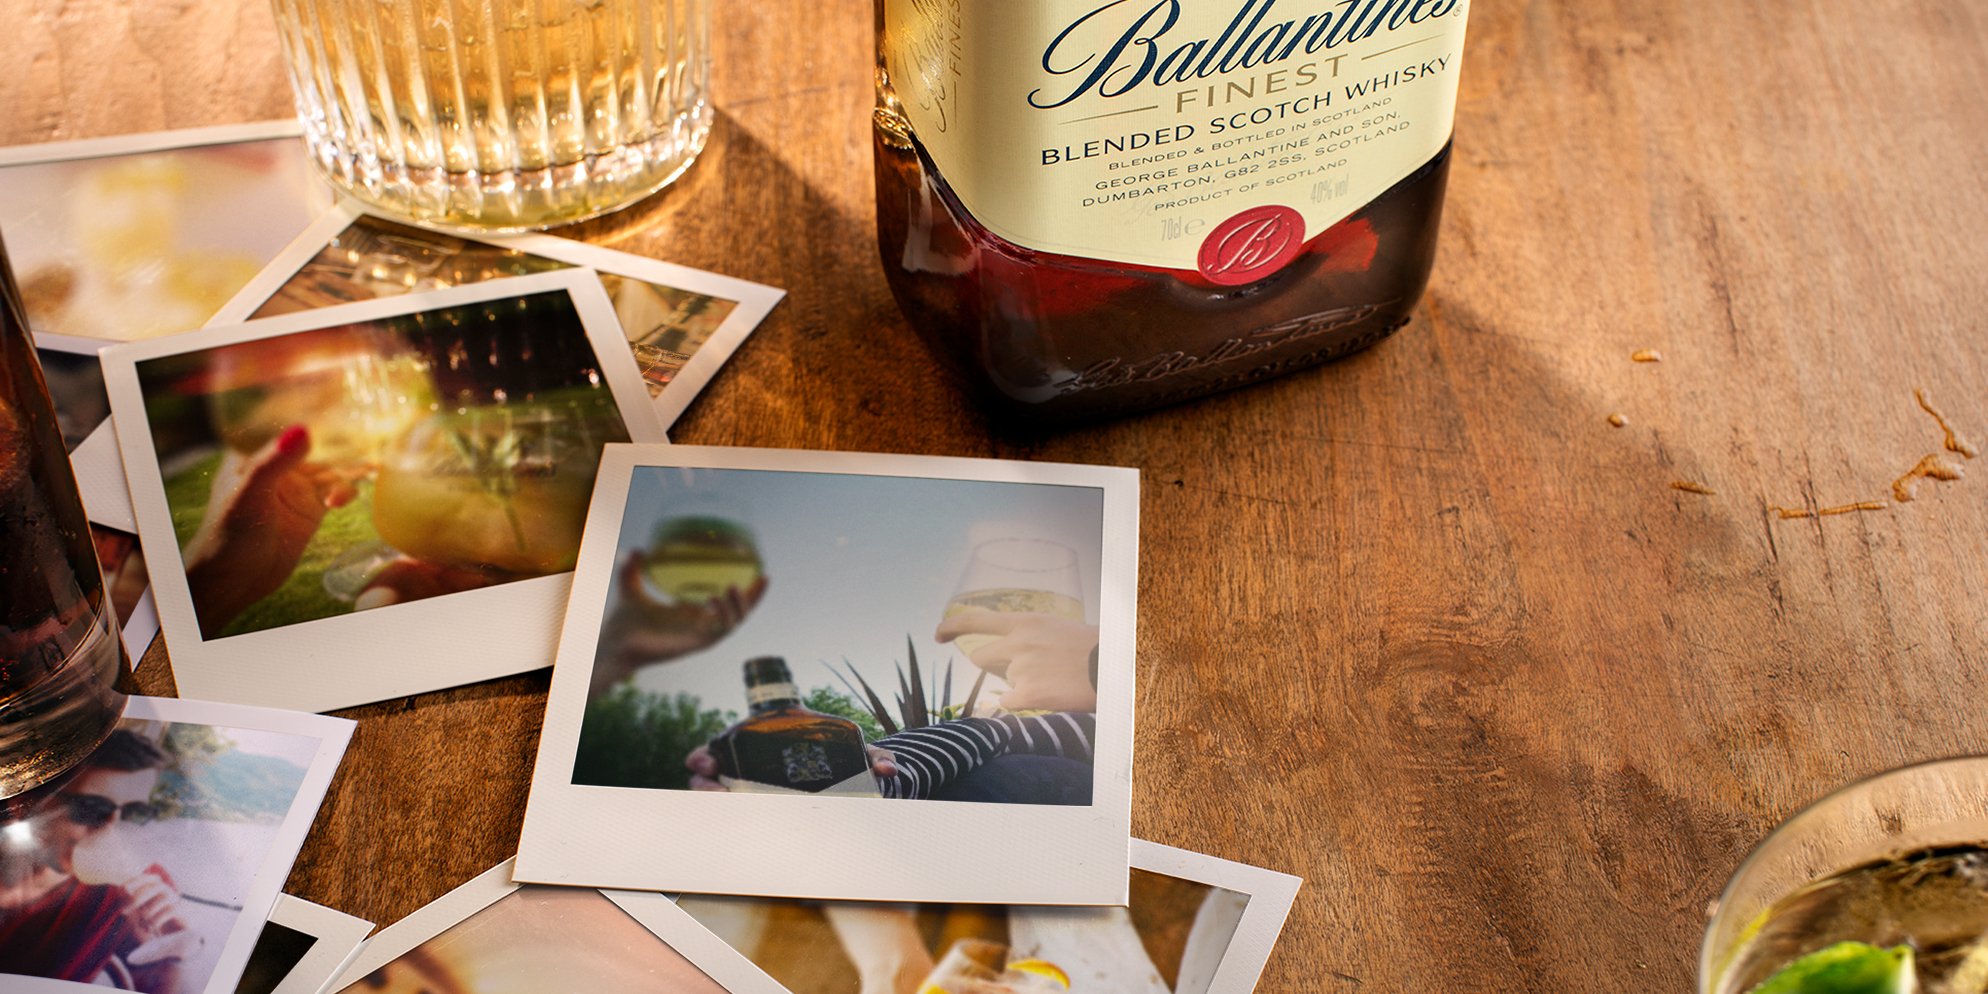 Ballantine's How You Like